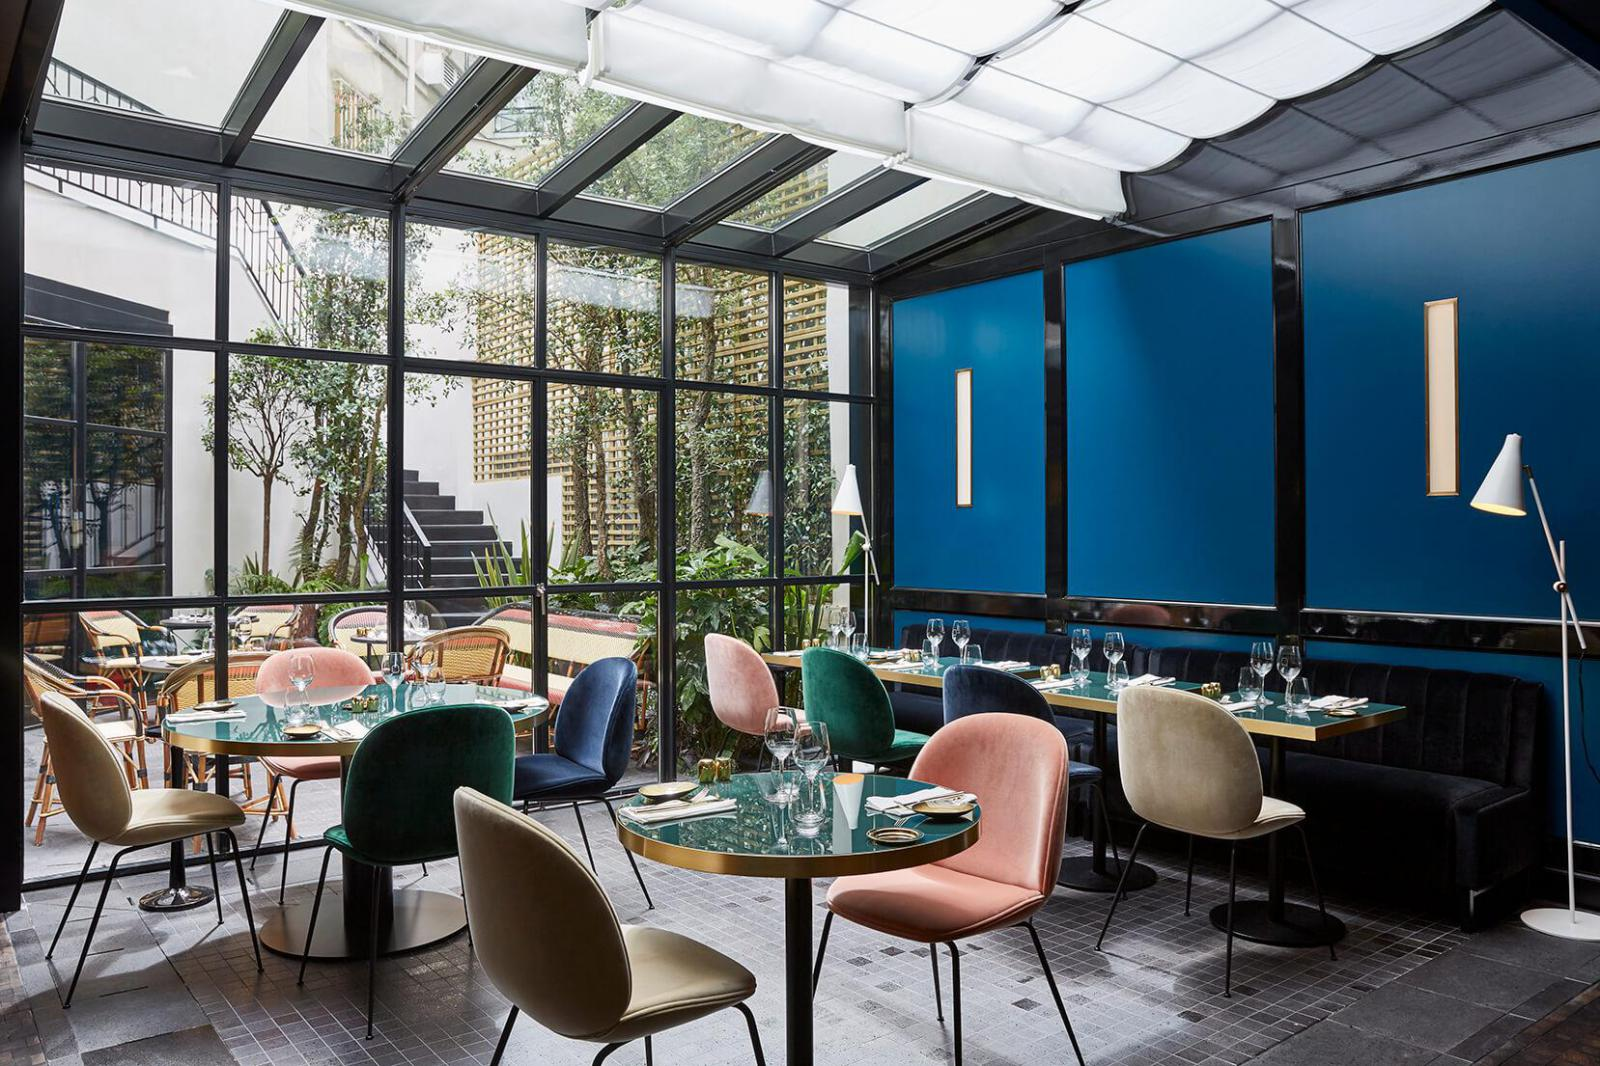 These Are the 8 Hotels You Need to Know Before Maison et Objet 2017! maison et objet 2017 These Are the 8 Hotels You Need to Know Before Maison et Objet 2017! These Are the 8 Hotels You Need to Know Before Maison et Objet 2017 4